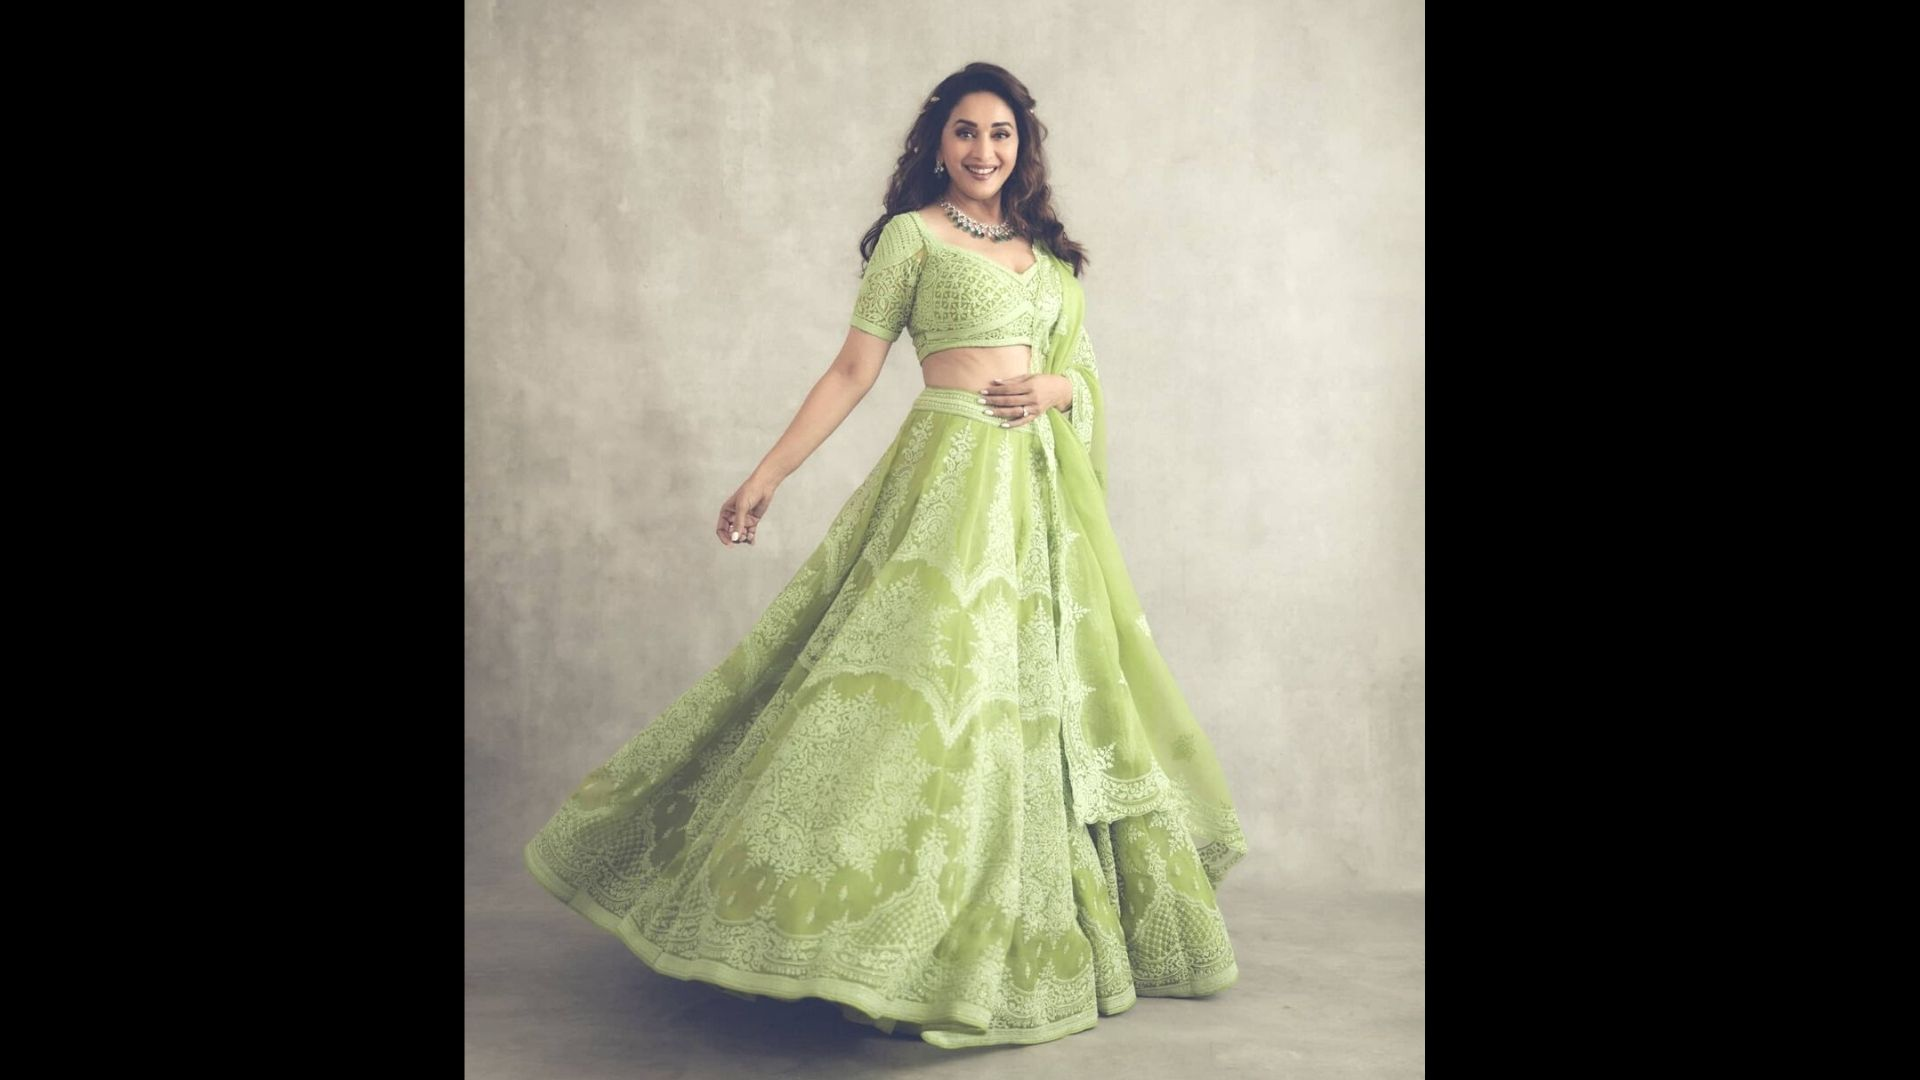 Madhuri Dixit's Top 3 Dance Deewane Look That Will Make You Fall For The Dhak Dhak Girl All Over Again